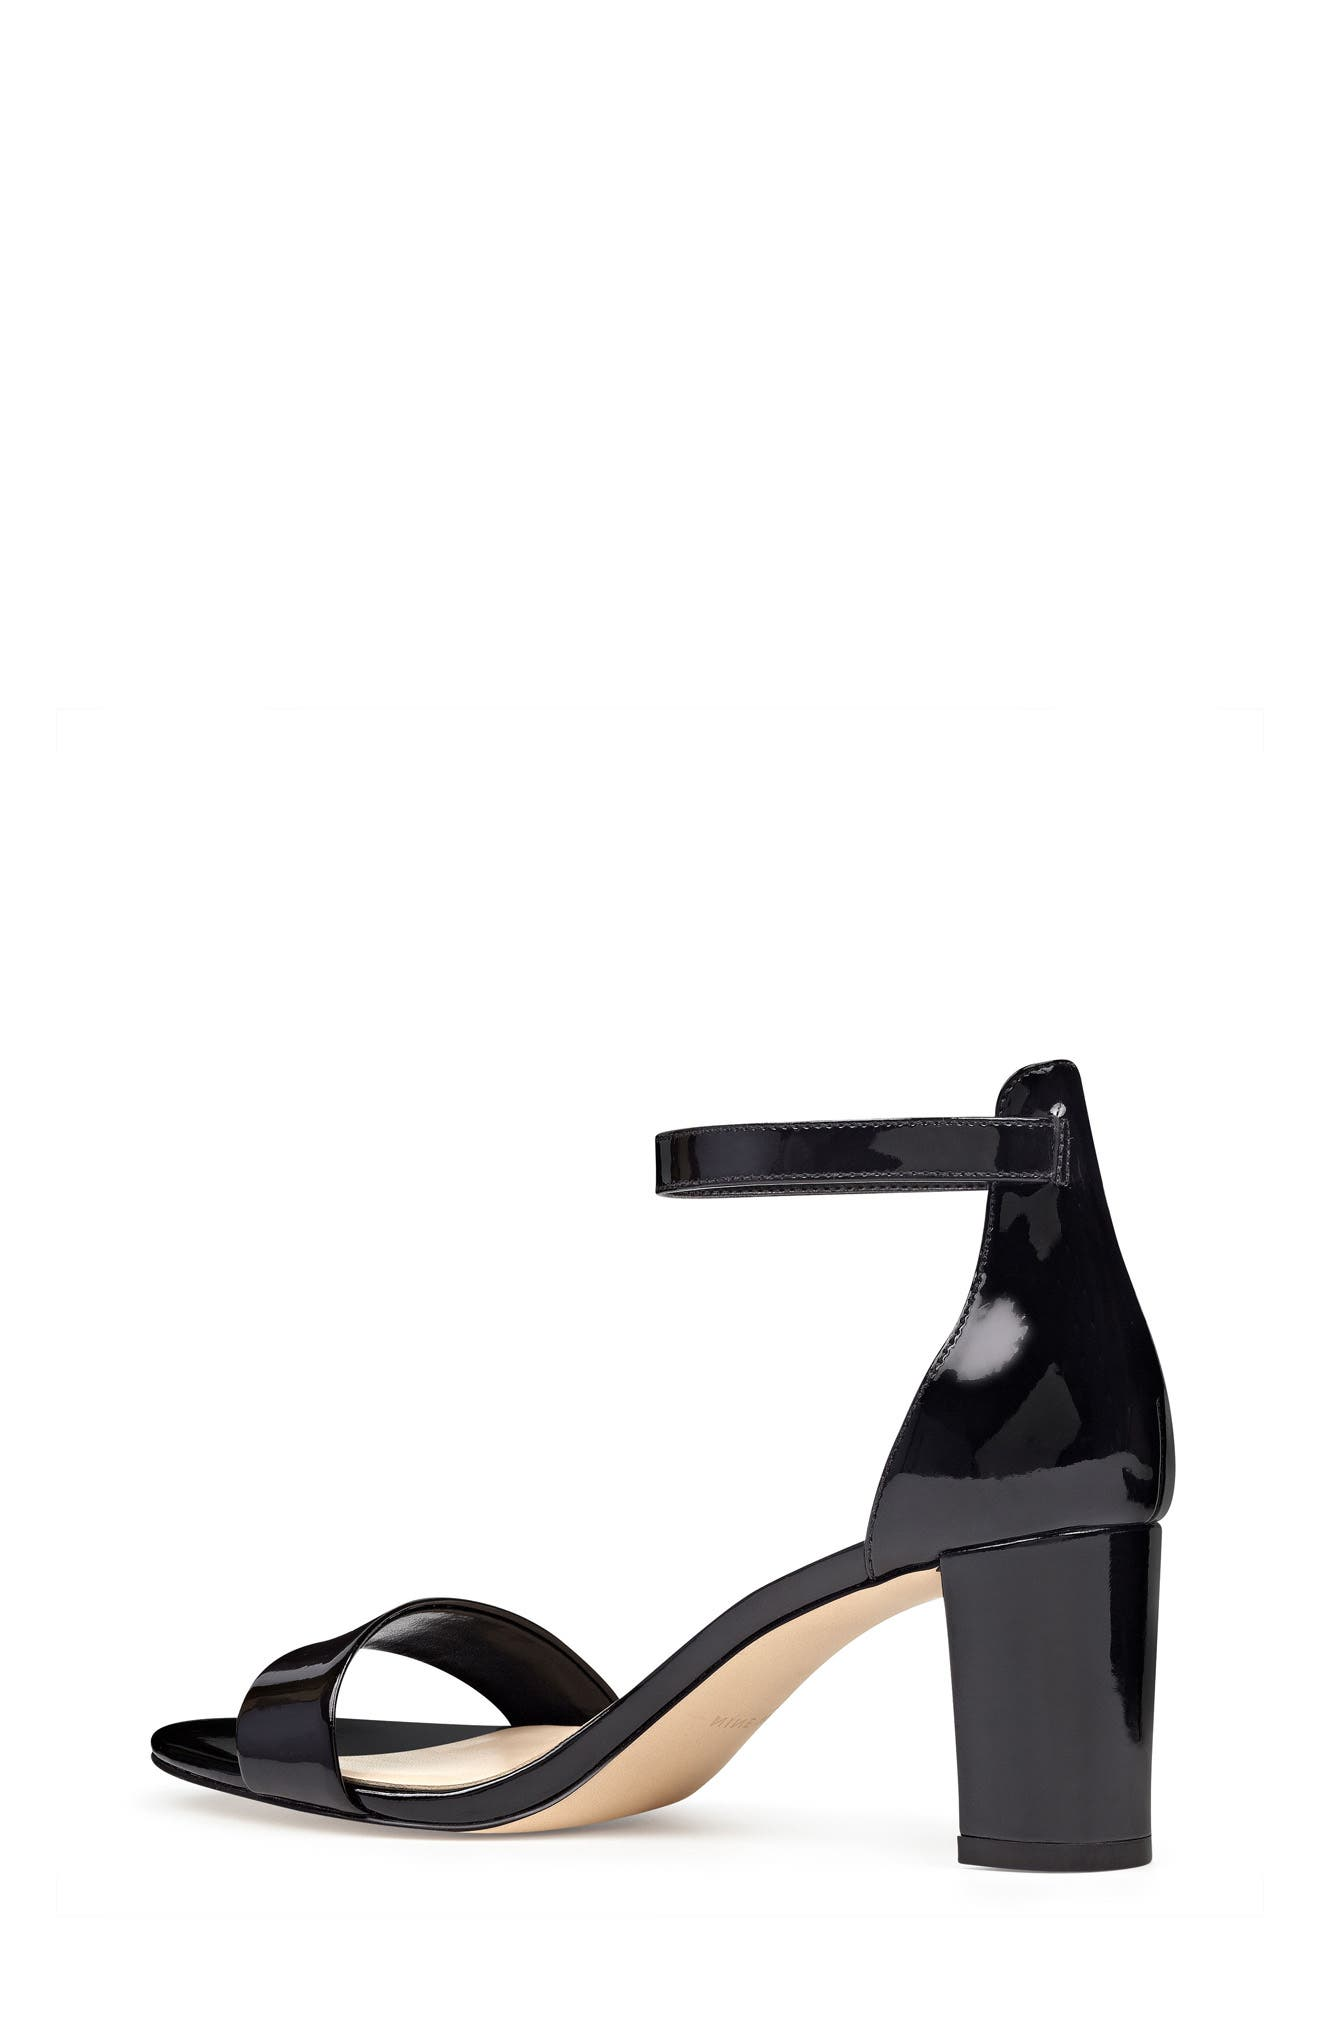 Pruce Ankle Strap Sandal,                             Alternate thumbnail 2, color,                             BLACK PATENT